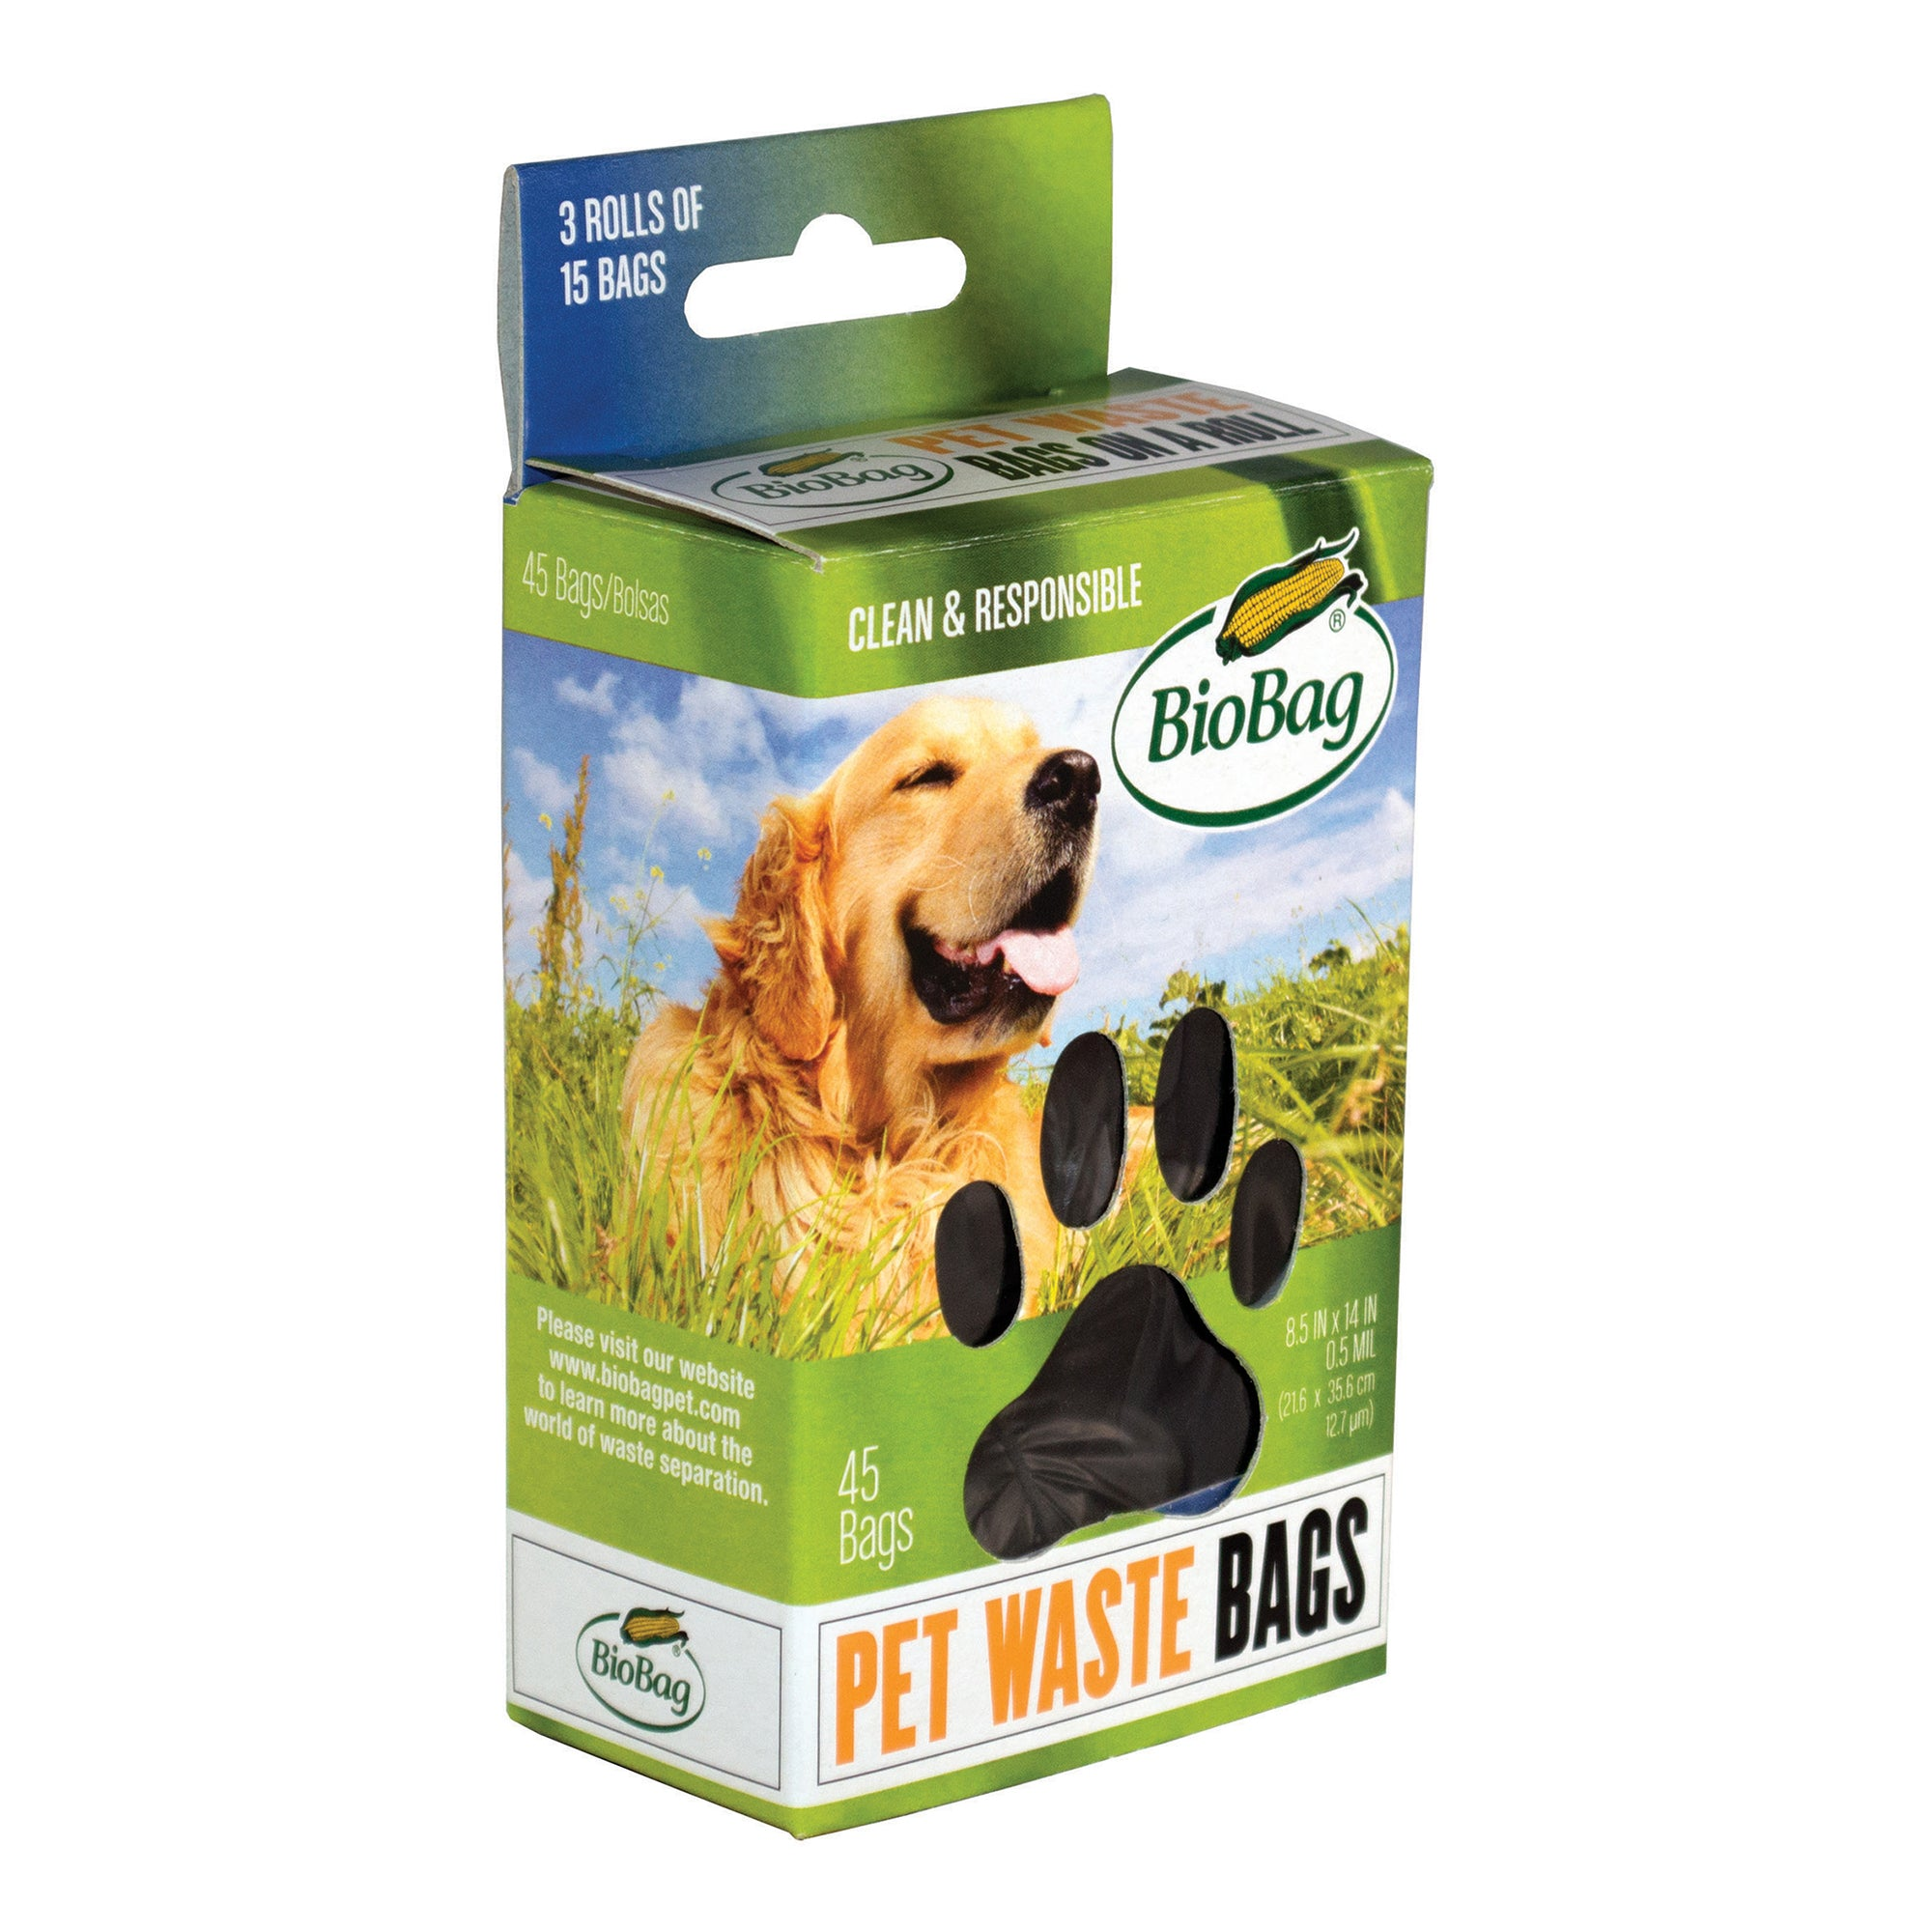 biodegradable dog waste bags - Dog Waste Bags